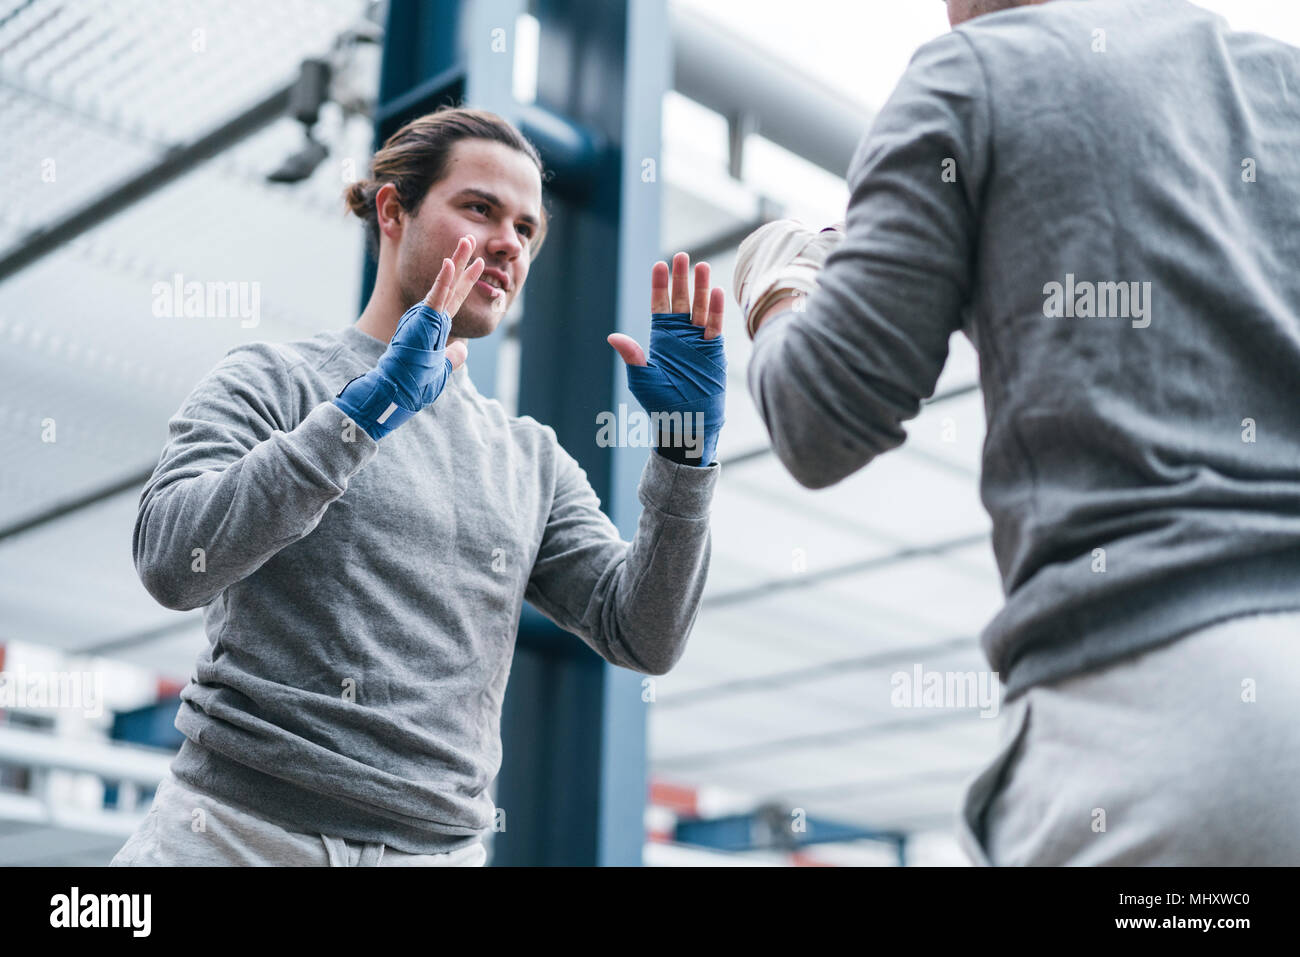 Identical male adult twin boxers training outdoors, practicing punches - Stock Image